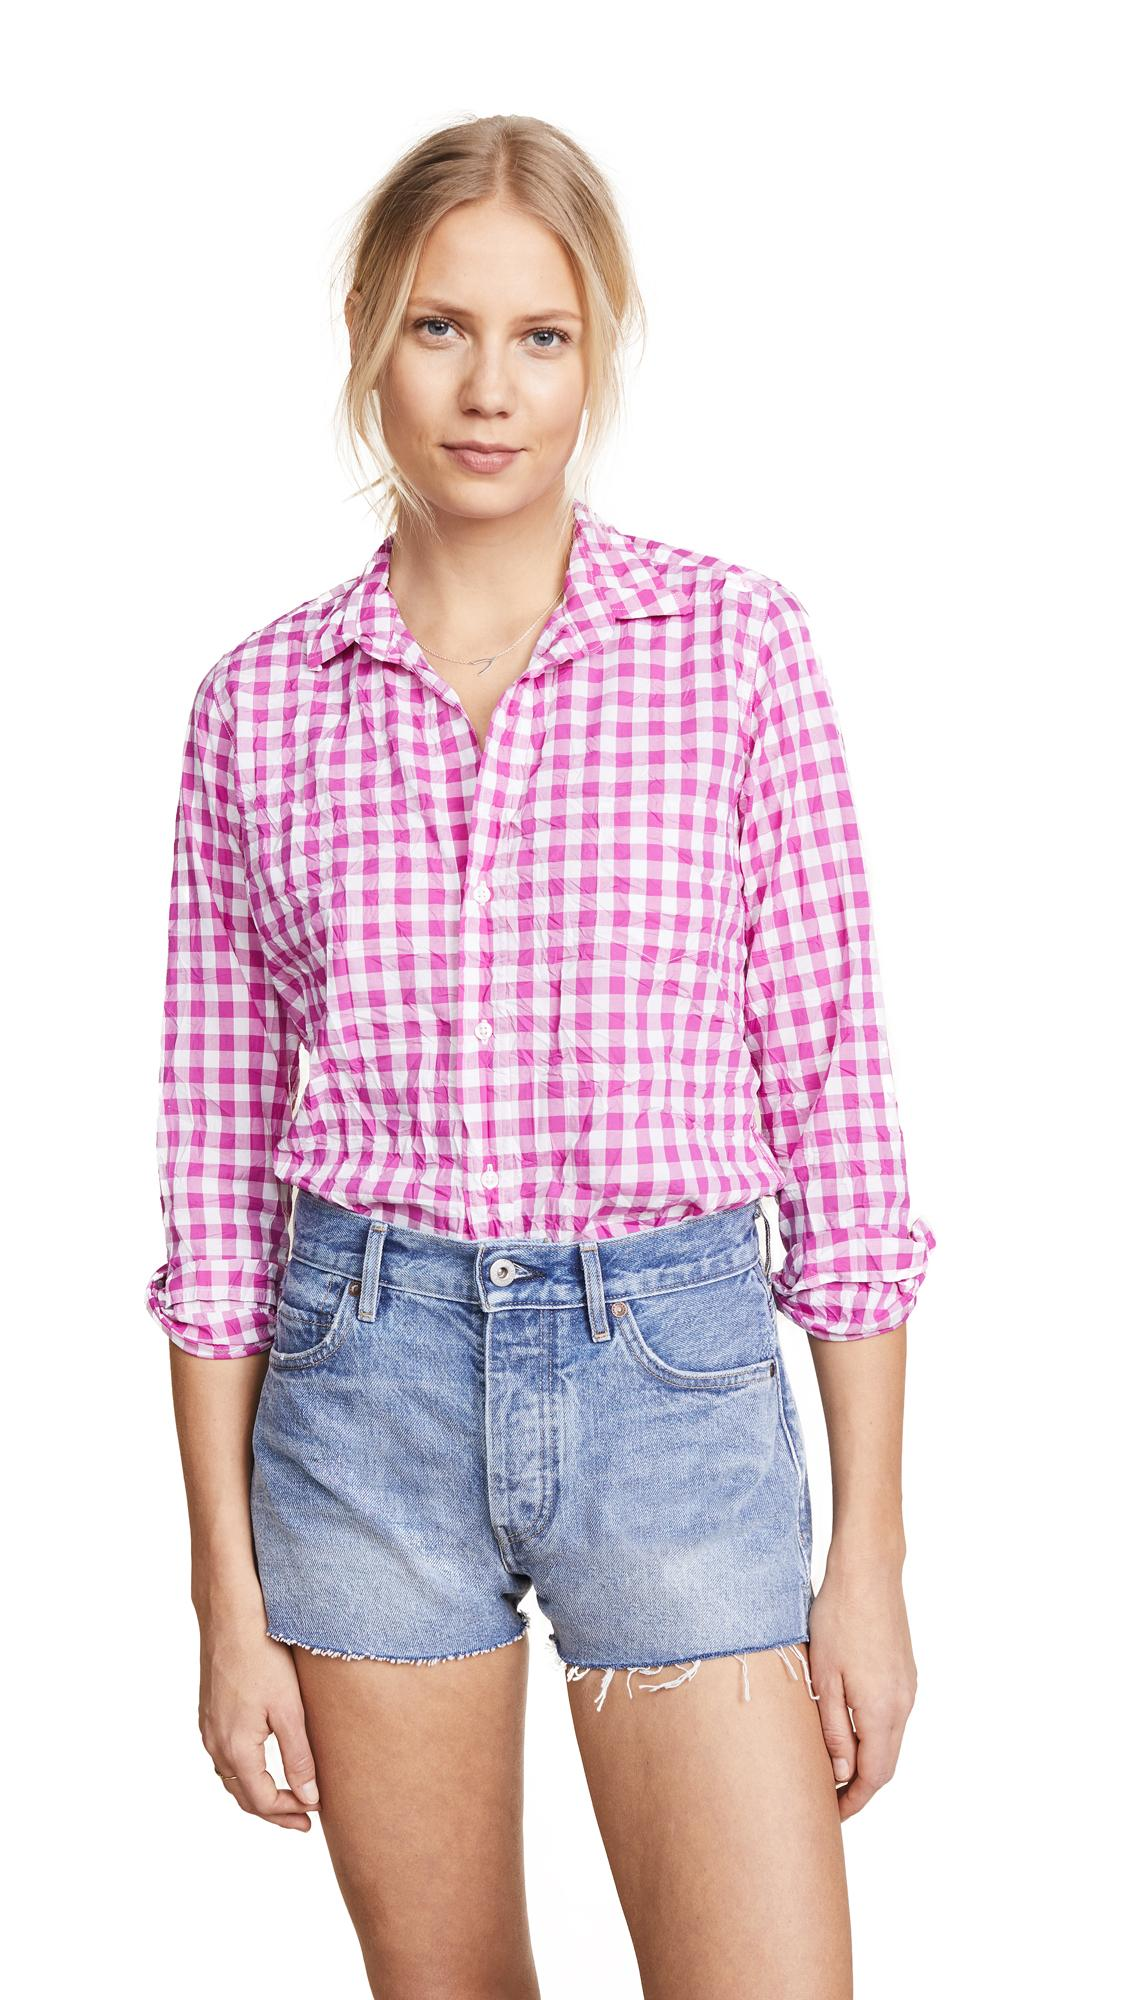 15aae6985f525f Frank & Eileen Barry Gingham Button-Down Shirt In Large Hot Pink Check